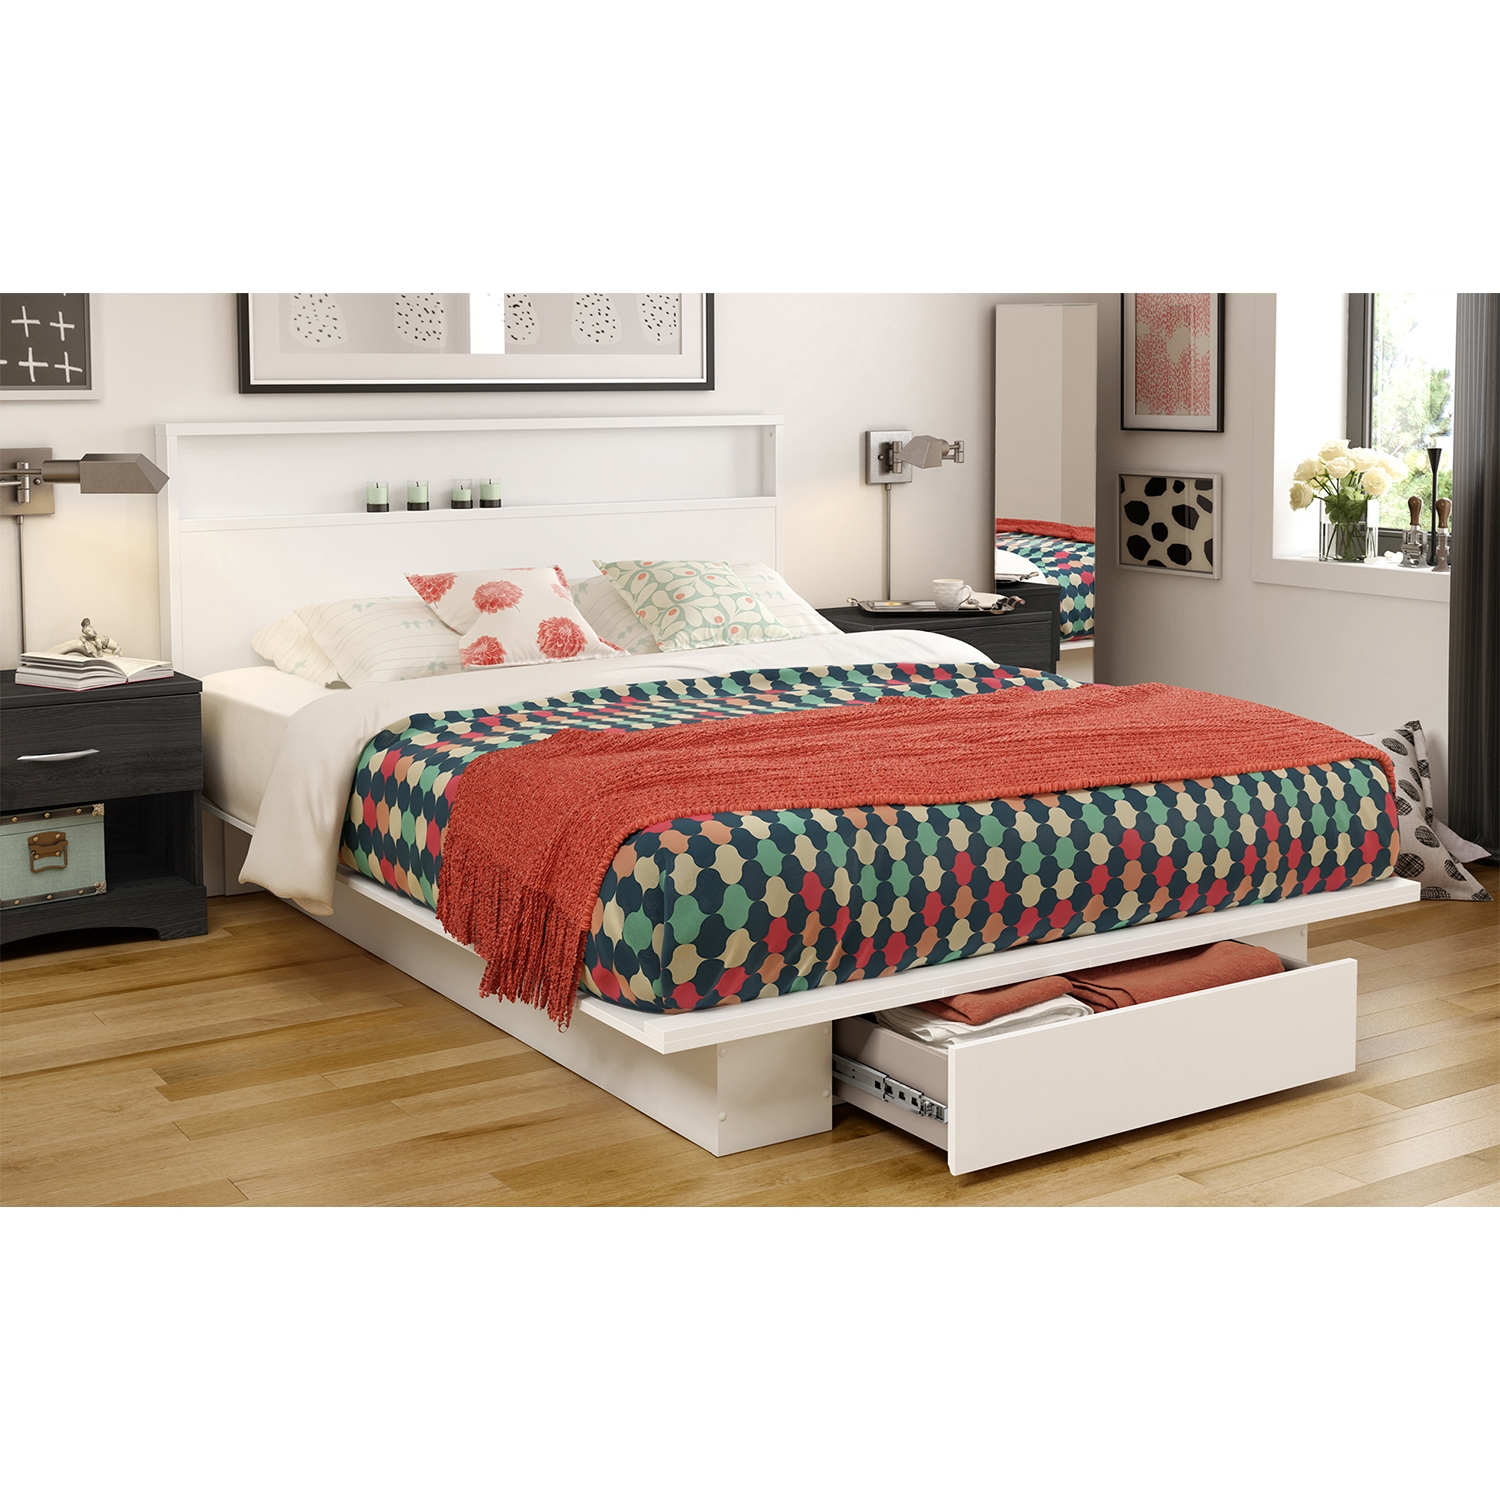 Holland Full/Queen Platform Bed - 1 Drawer, Pure White - SS-3340215